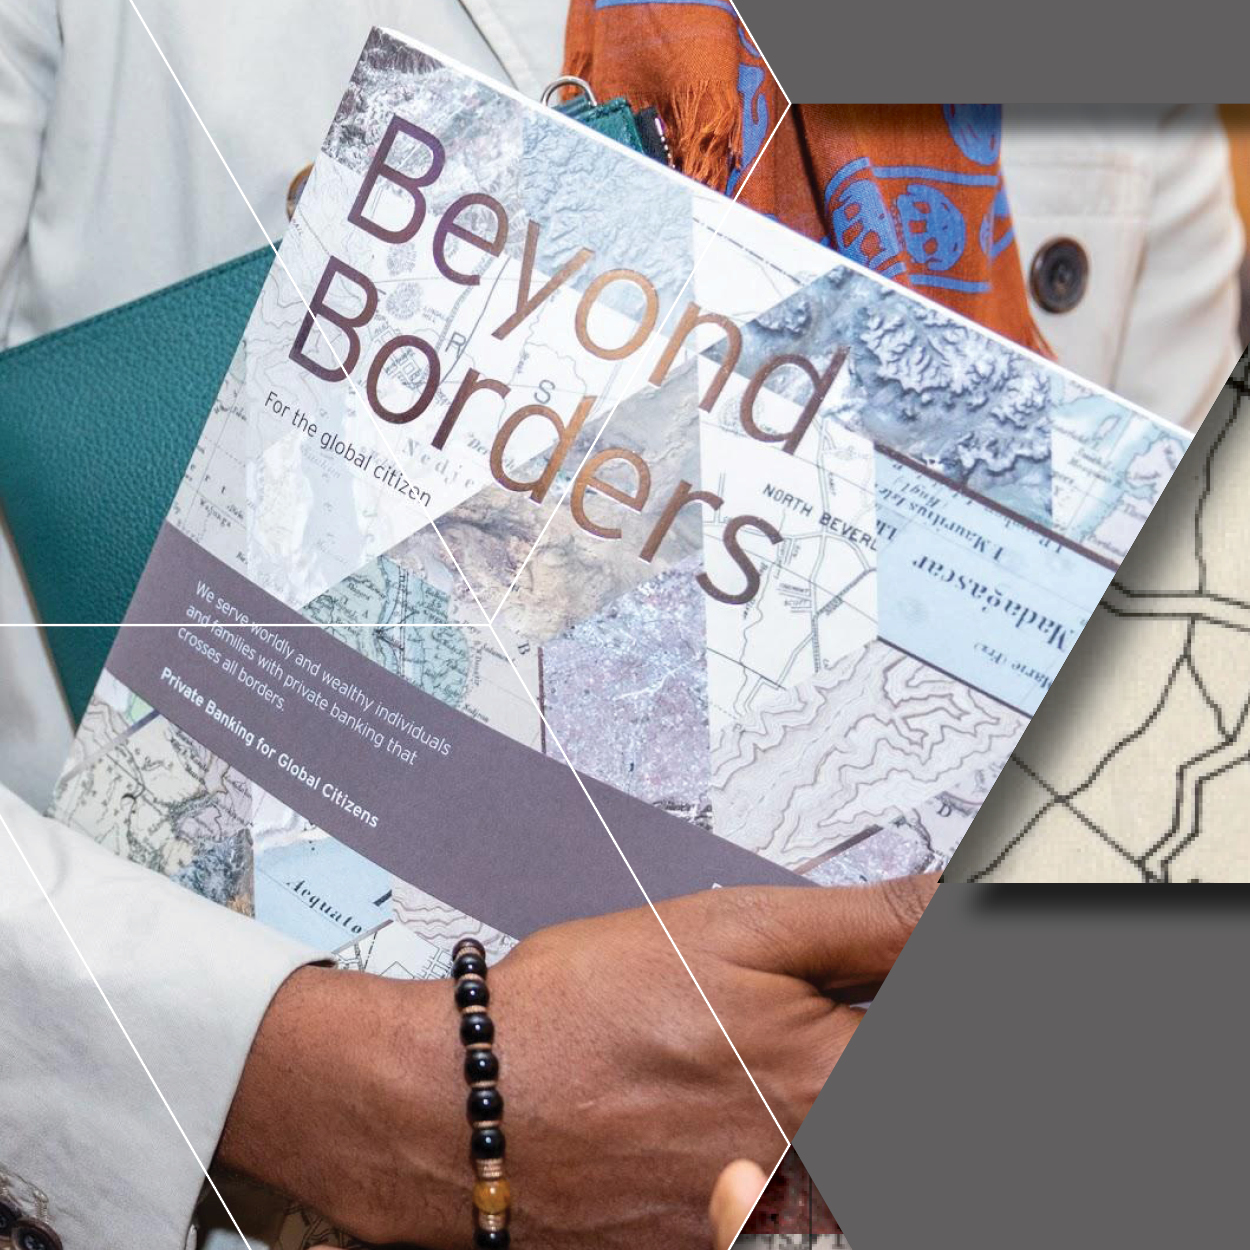 Art-beyond-borders-Events-highlights